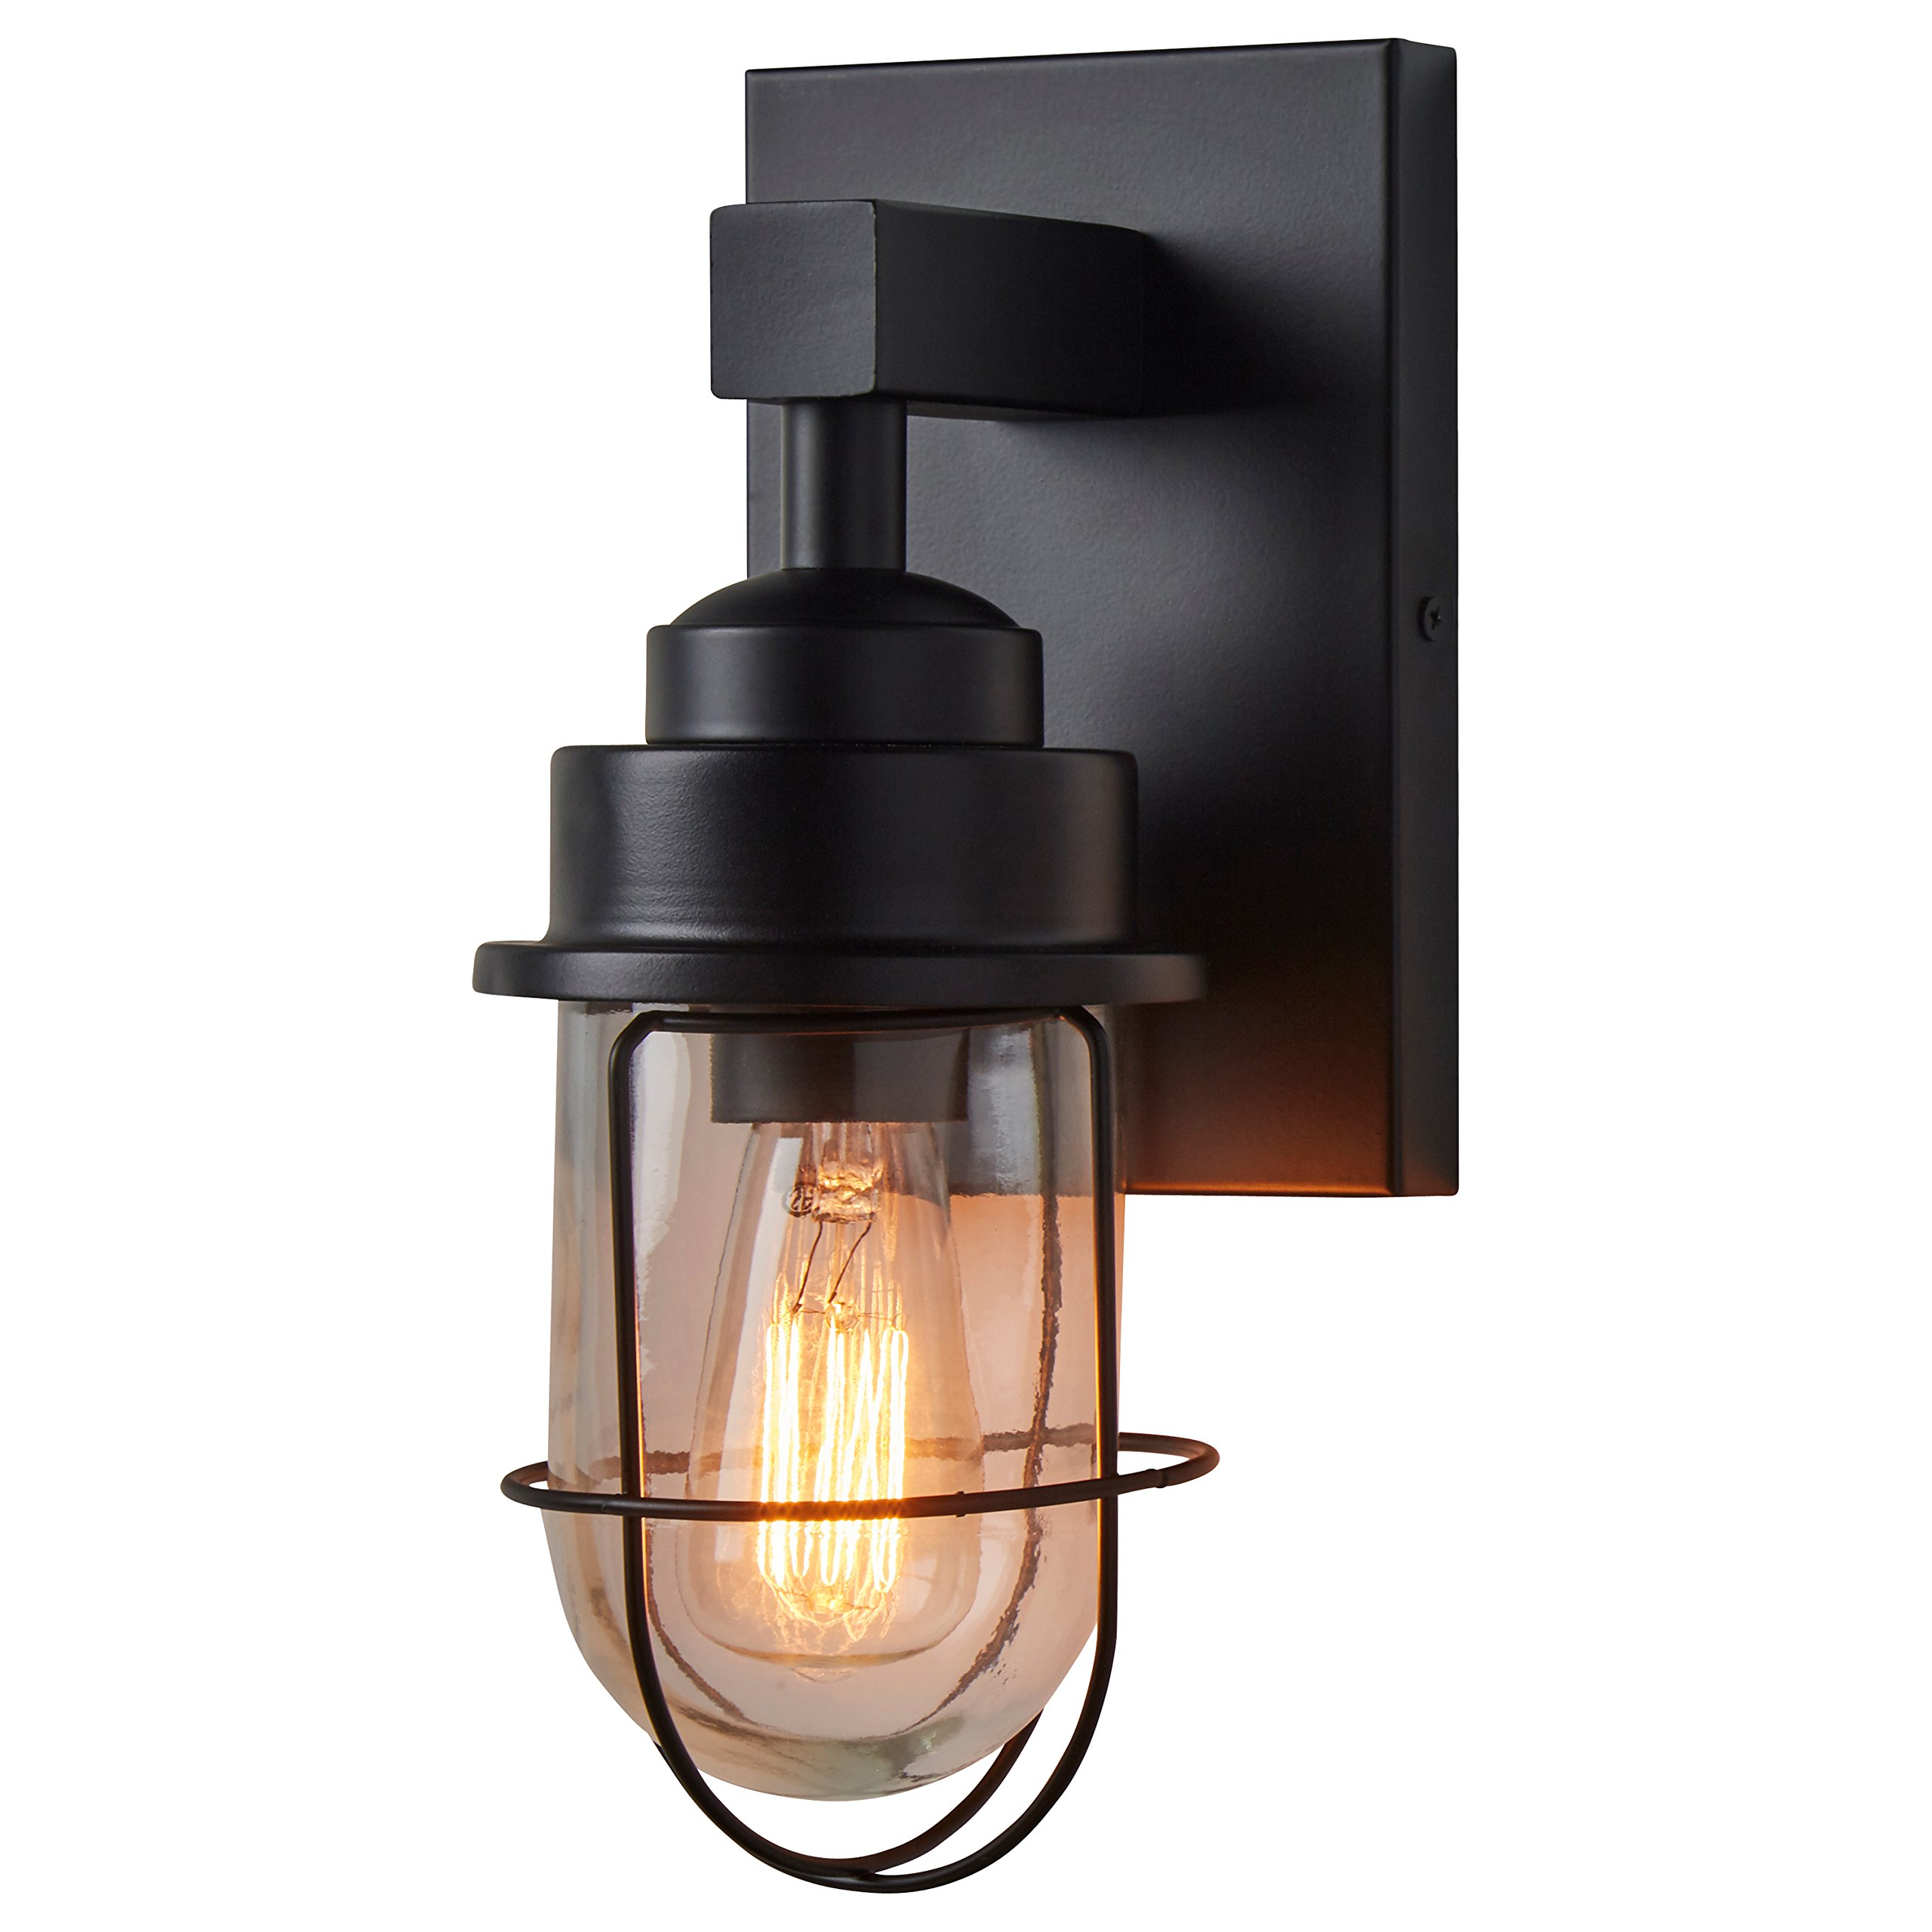 Stone & Beam Jordan Industrial Wall Sconce With Bulb, 11''H, Black